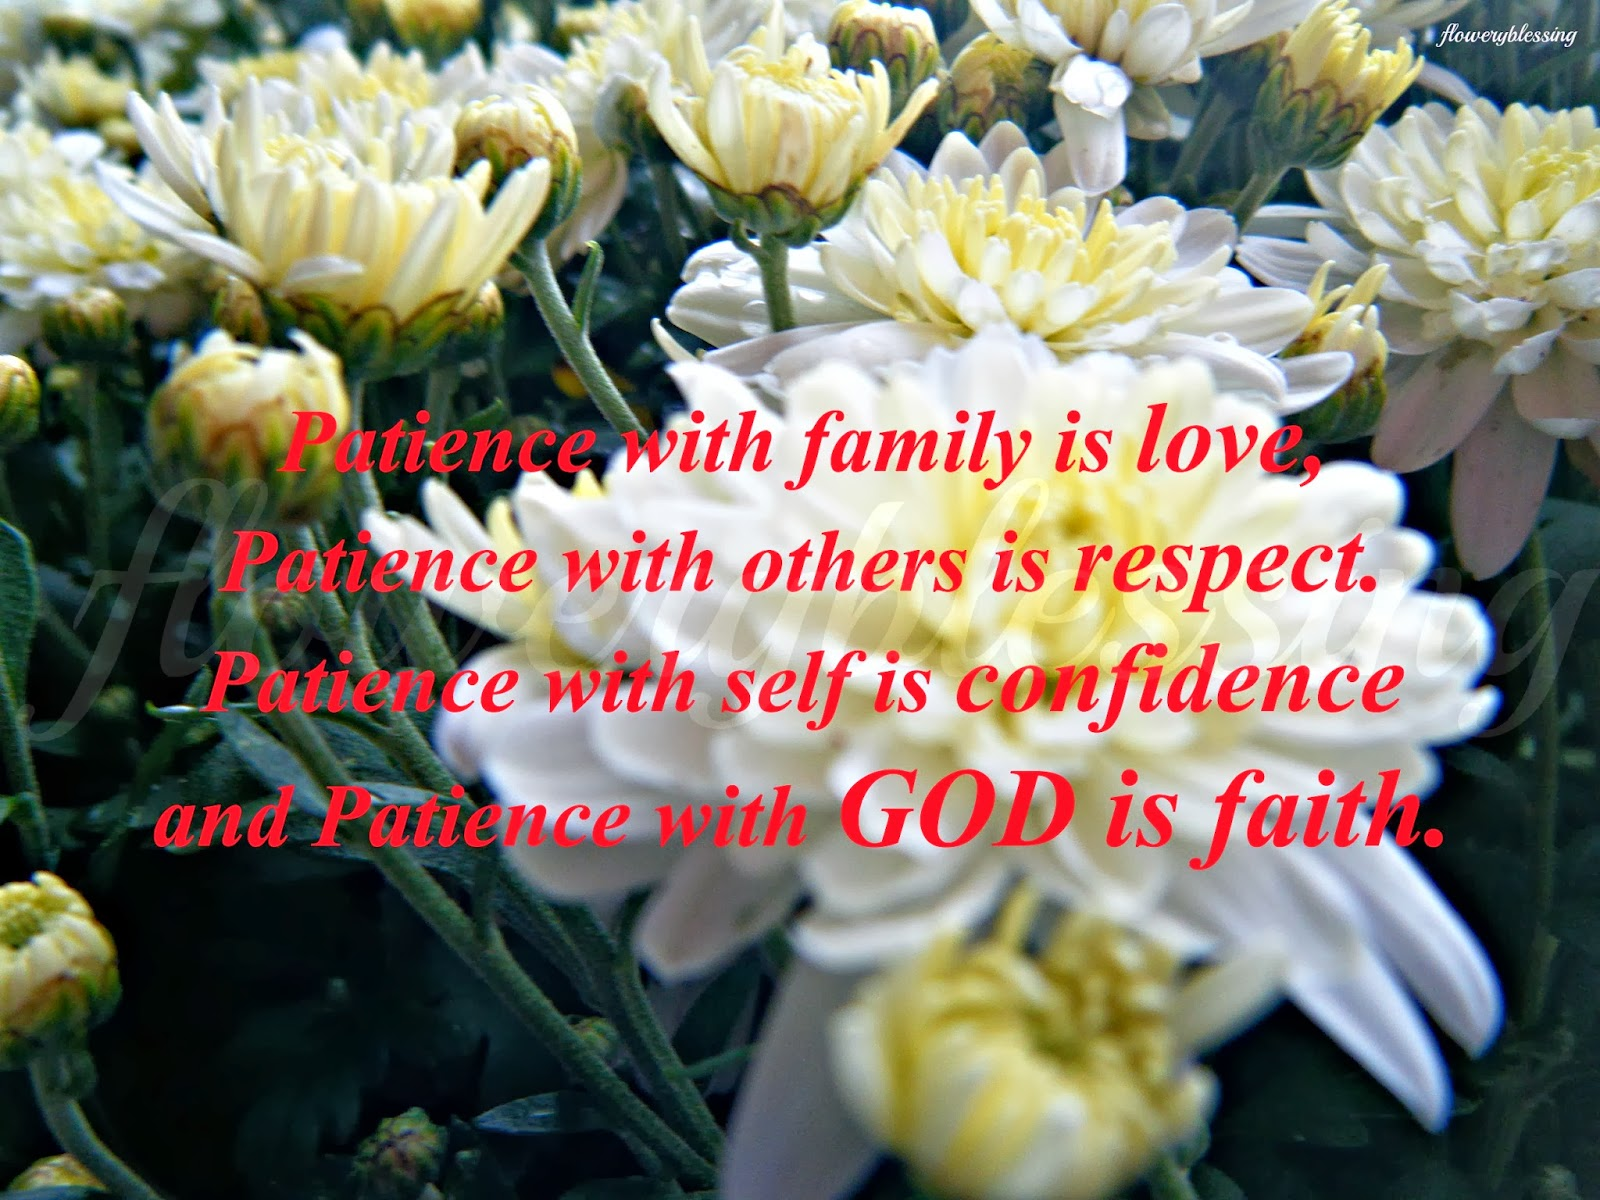 essay on patience with others is respect